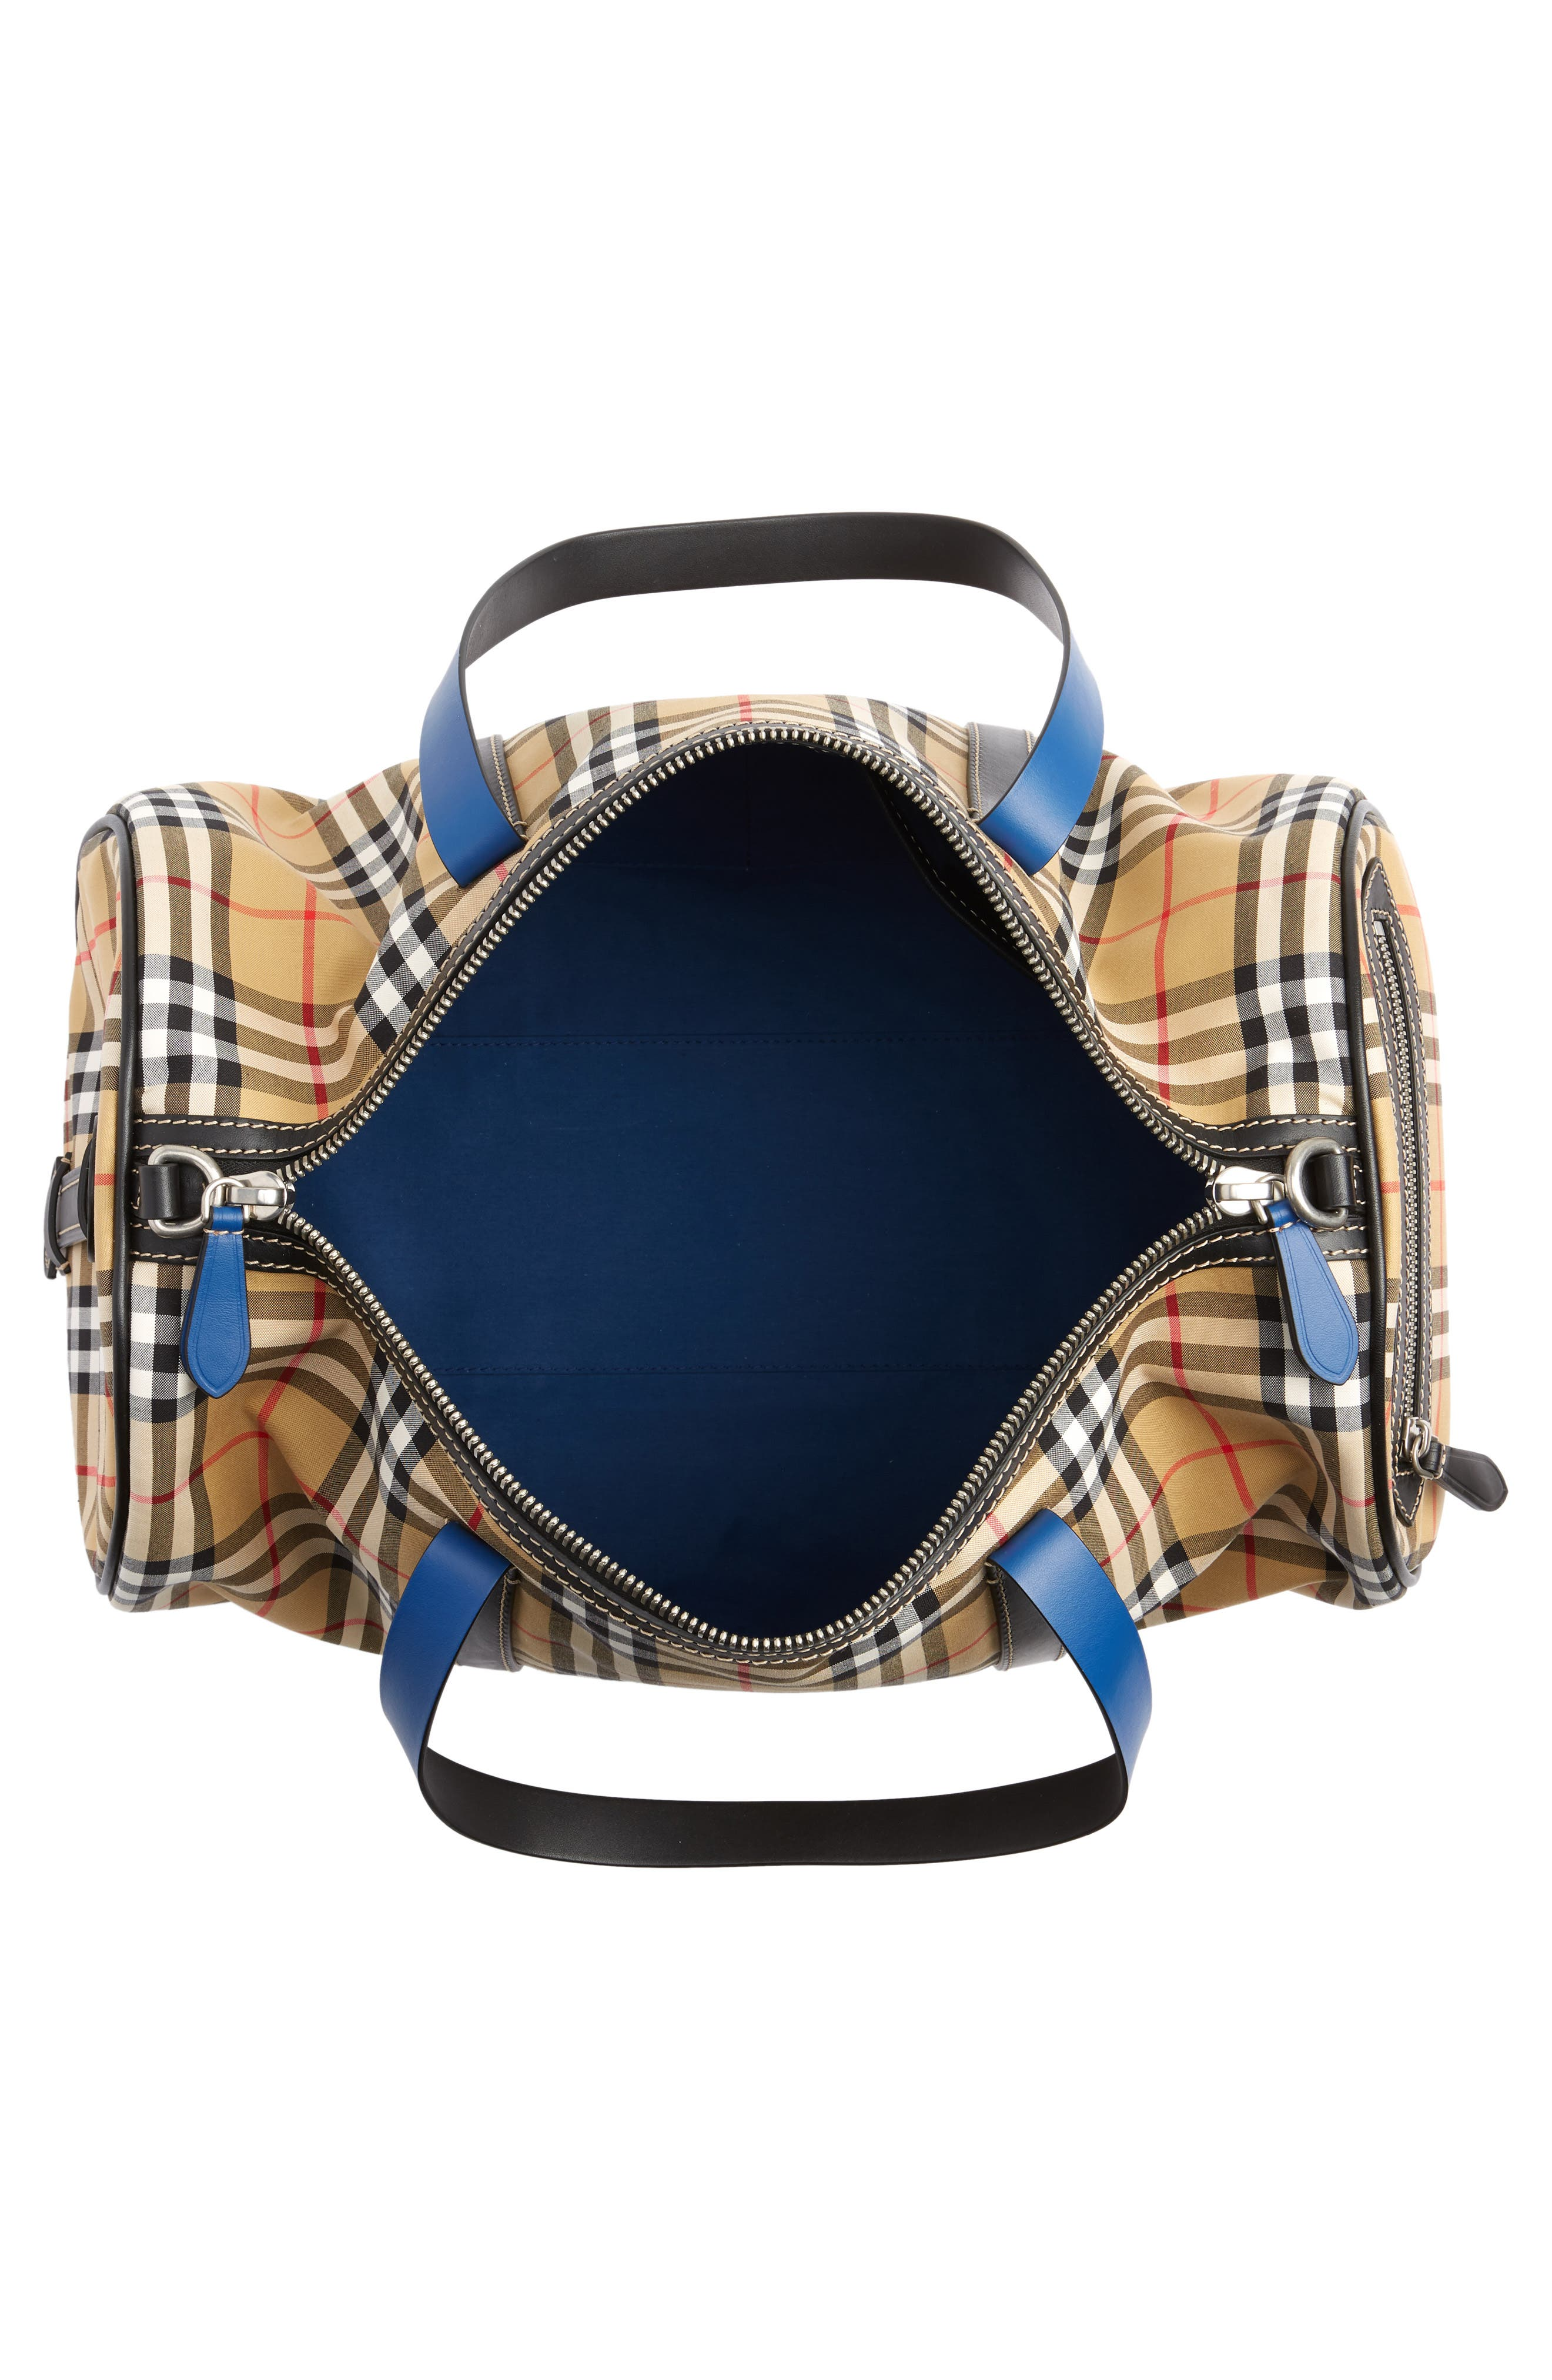 Medium Kennedy Vintage Check Duffel Bag,                             Alternate thumbnail 4, color,                             CANVAS BLUE